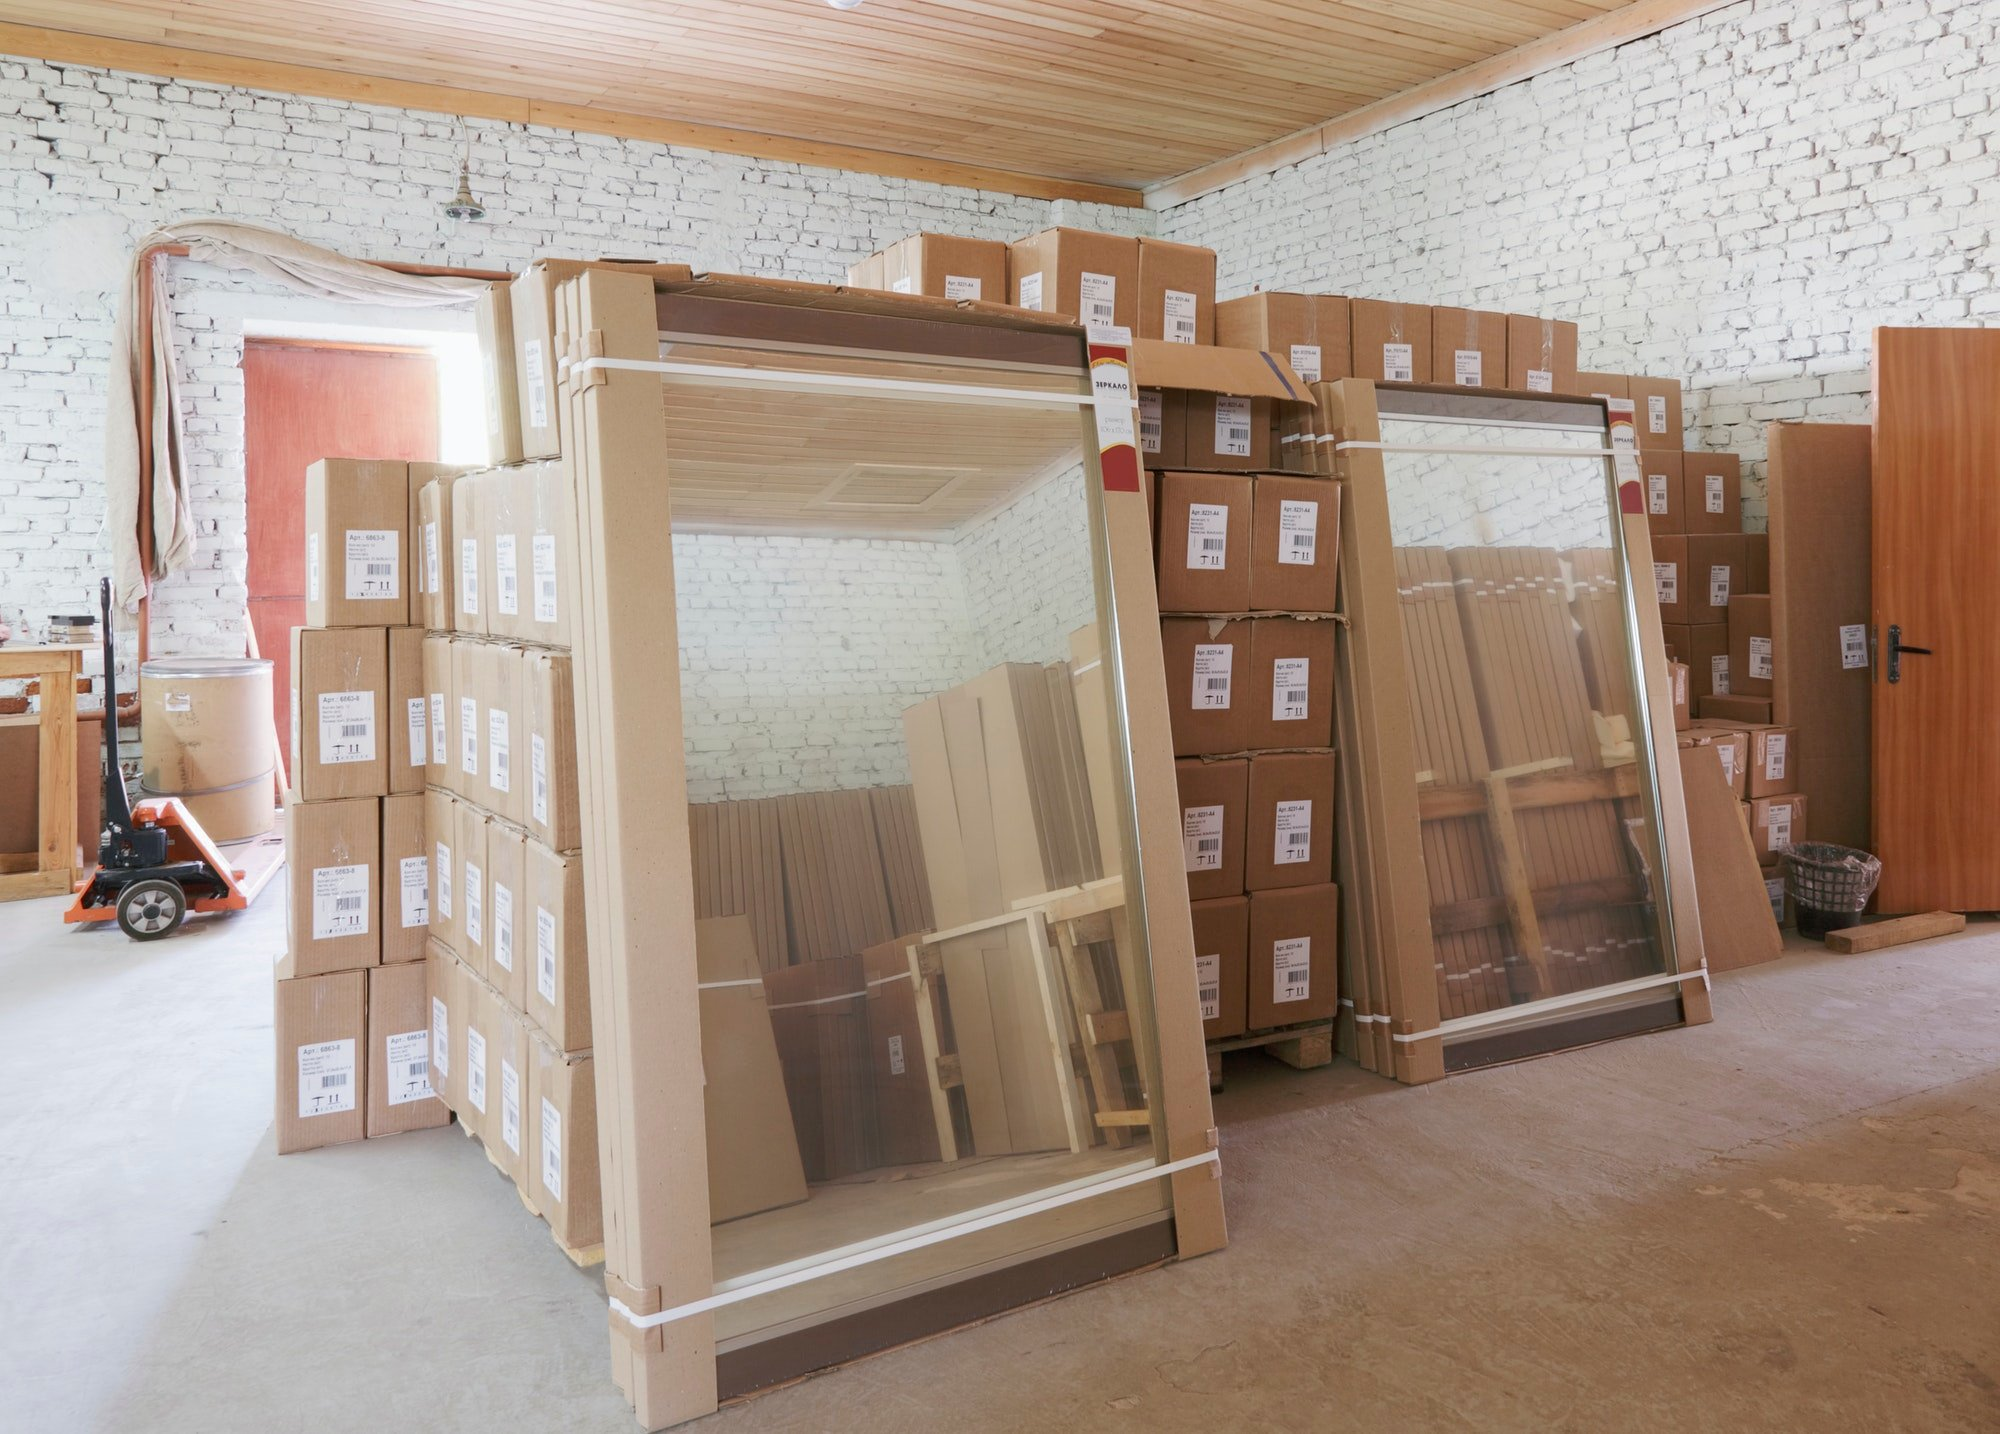 Stored Boxes and Mirrors